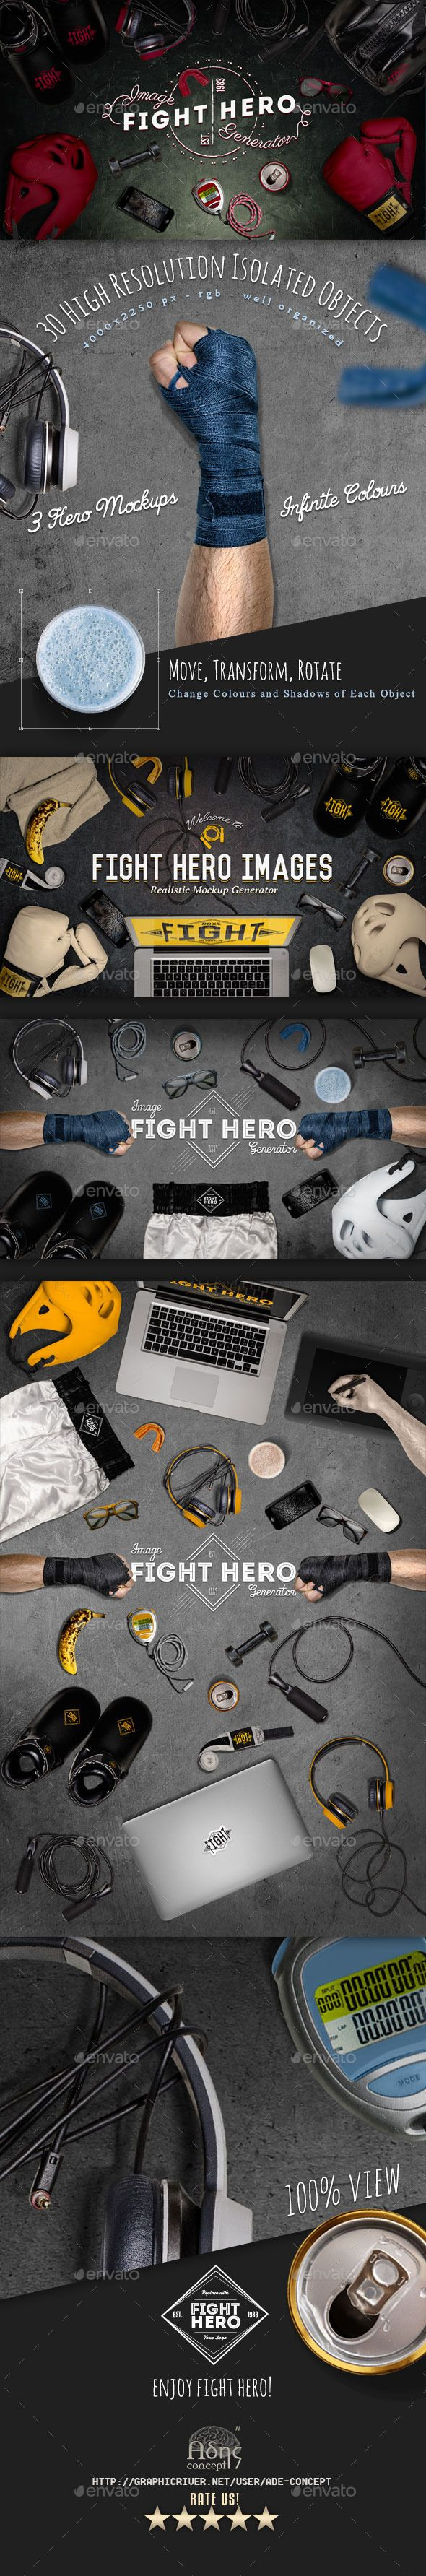 Fight Sport Hero Image Generator #design Download: http://graphicriver.net/item/fight-sport-hero-image-generator/12147639?ref=ksioks